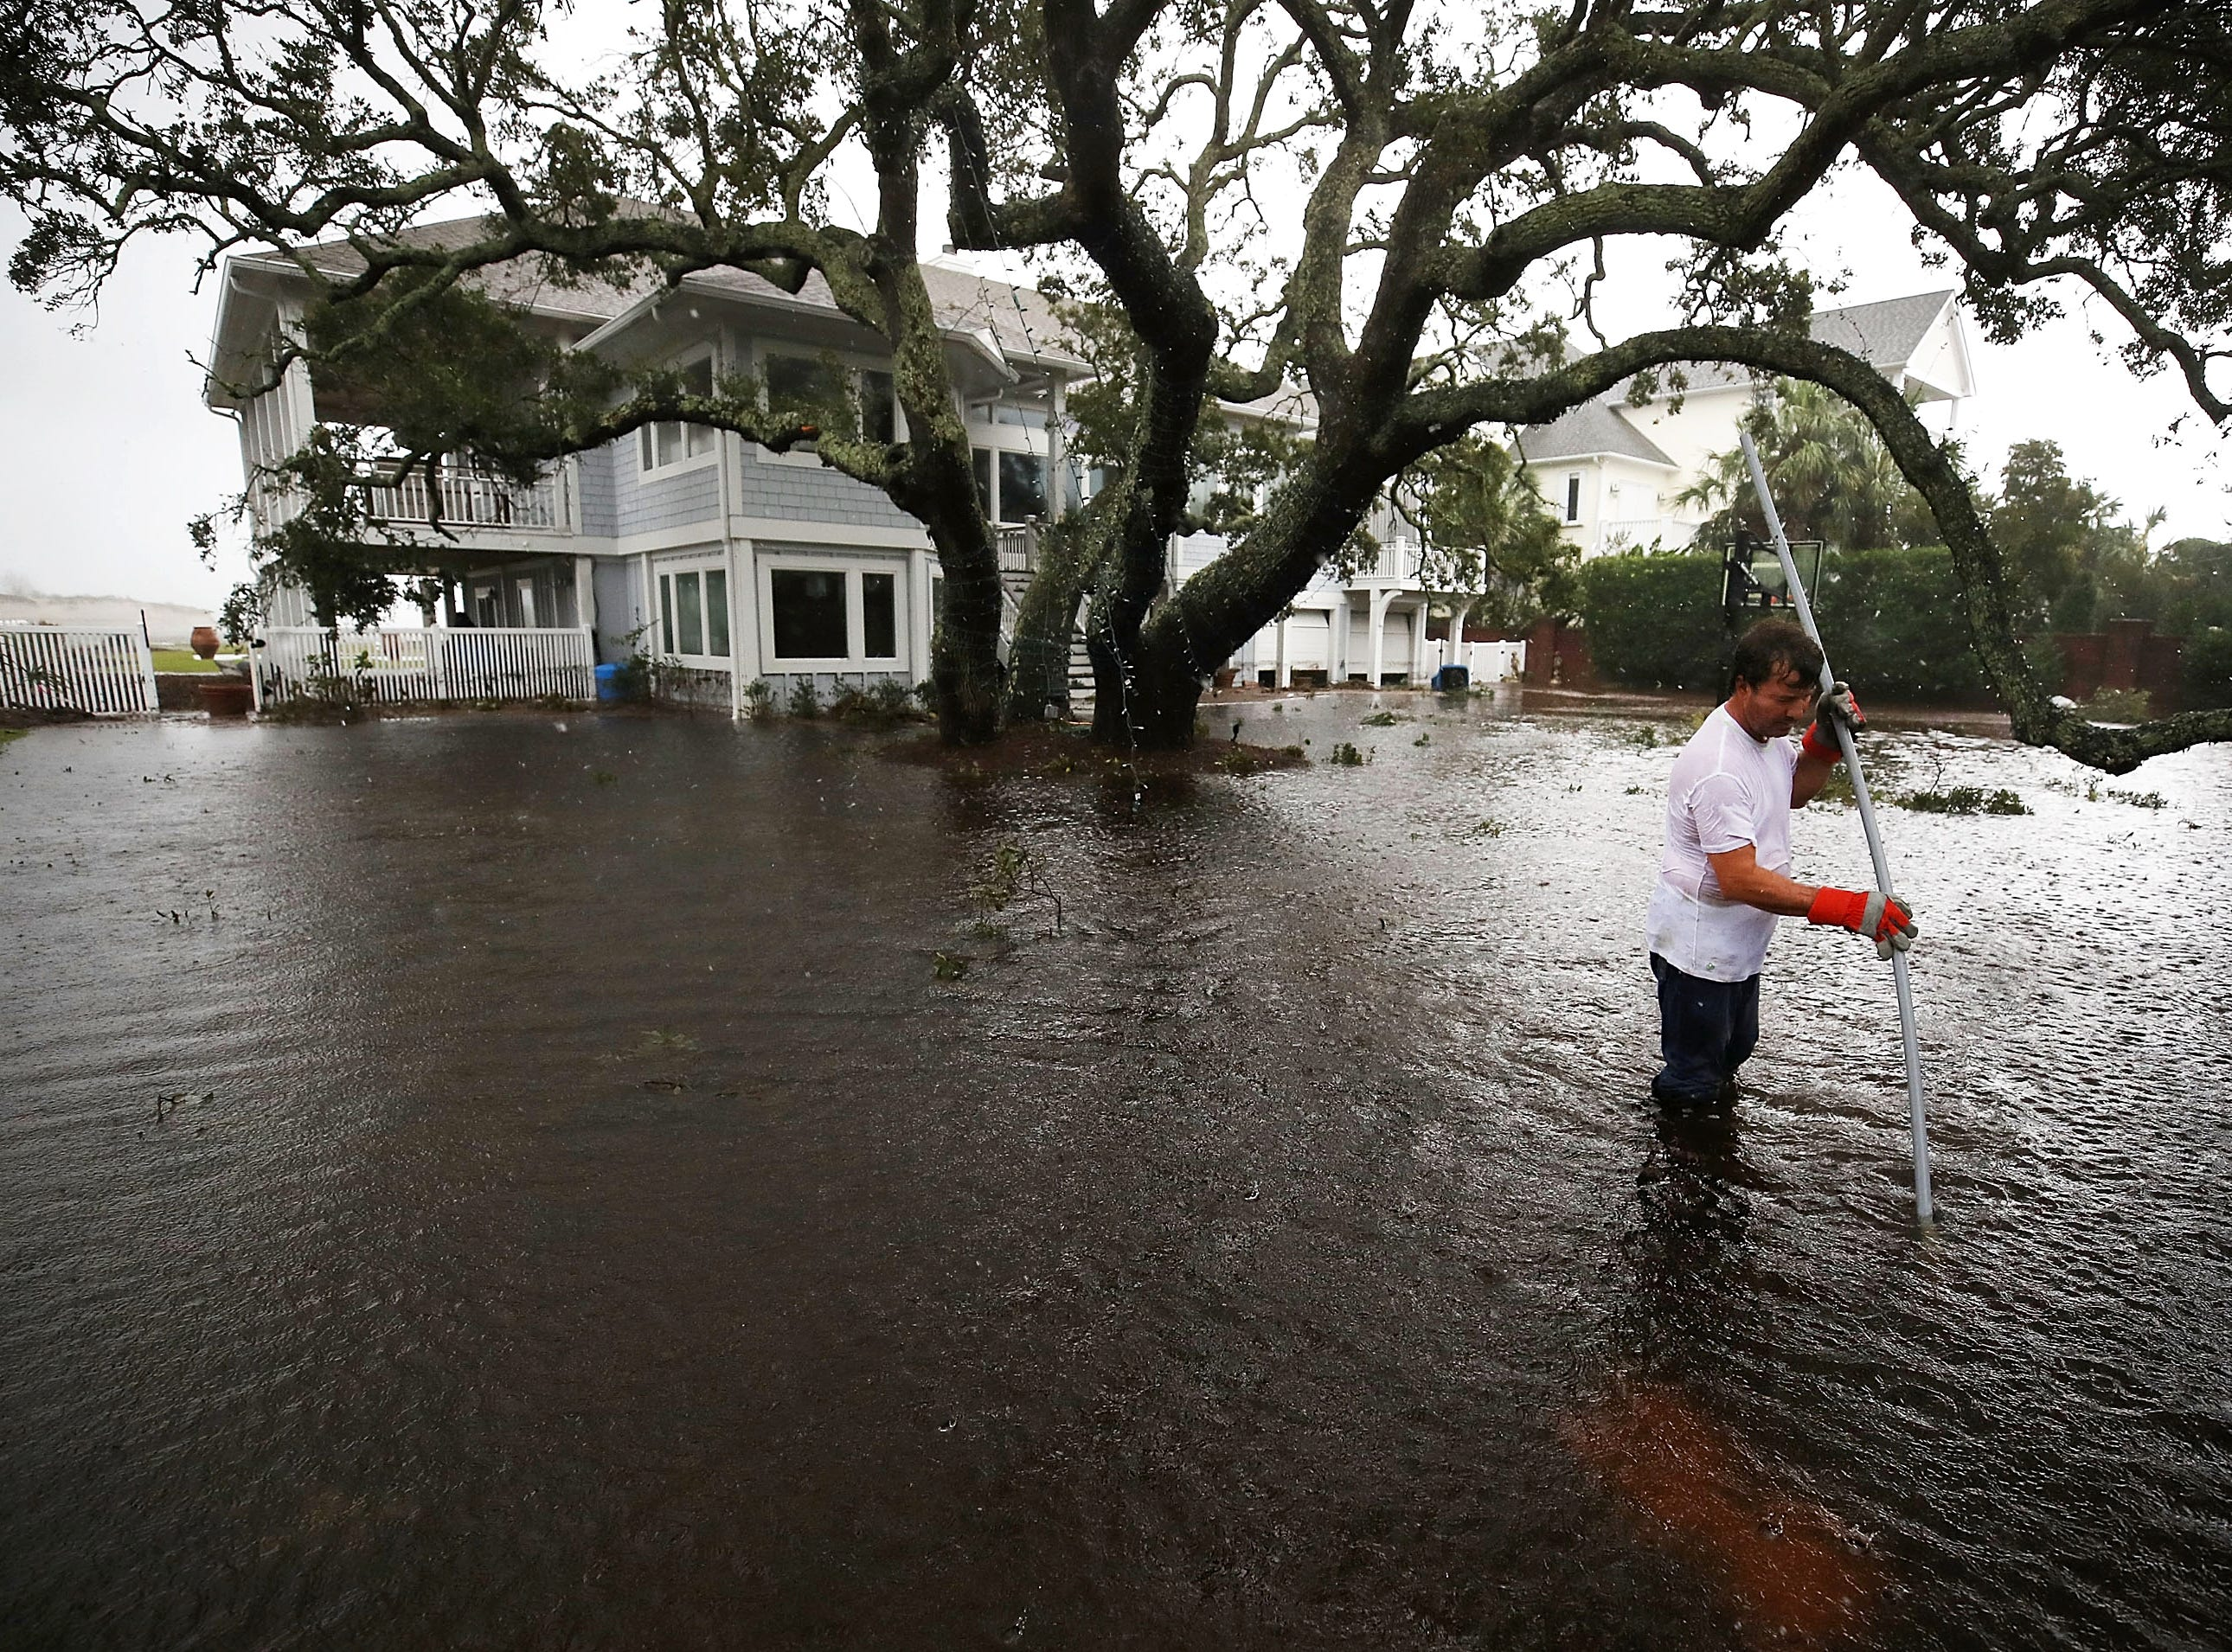 Mike Pollack searches for a drain in the yard of his flooded waterfront home a day after Hurricane Florence hit the area, on Sept. 15, 2018 in Wilmington, N.C..